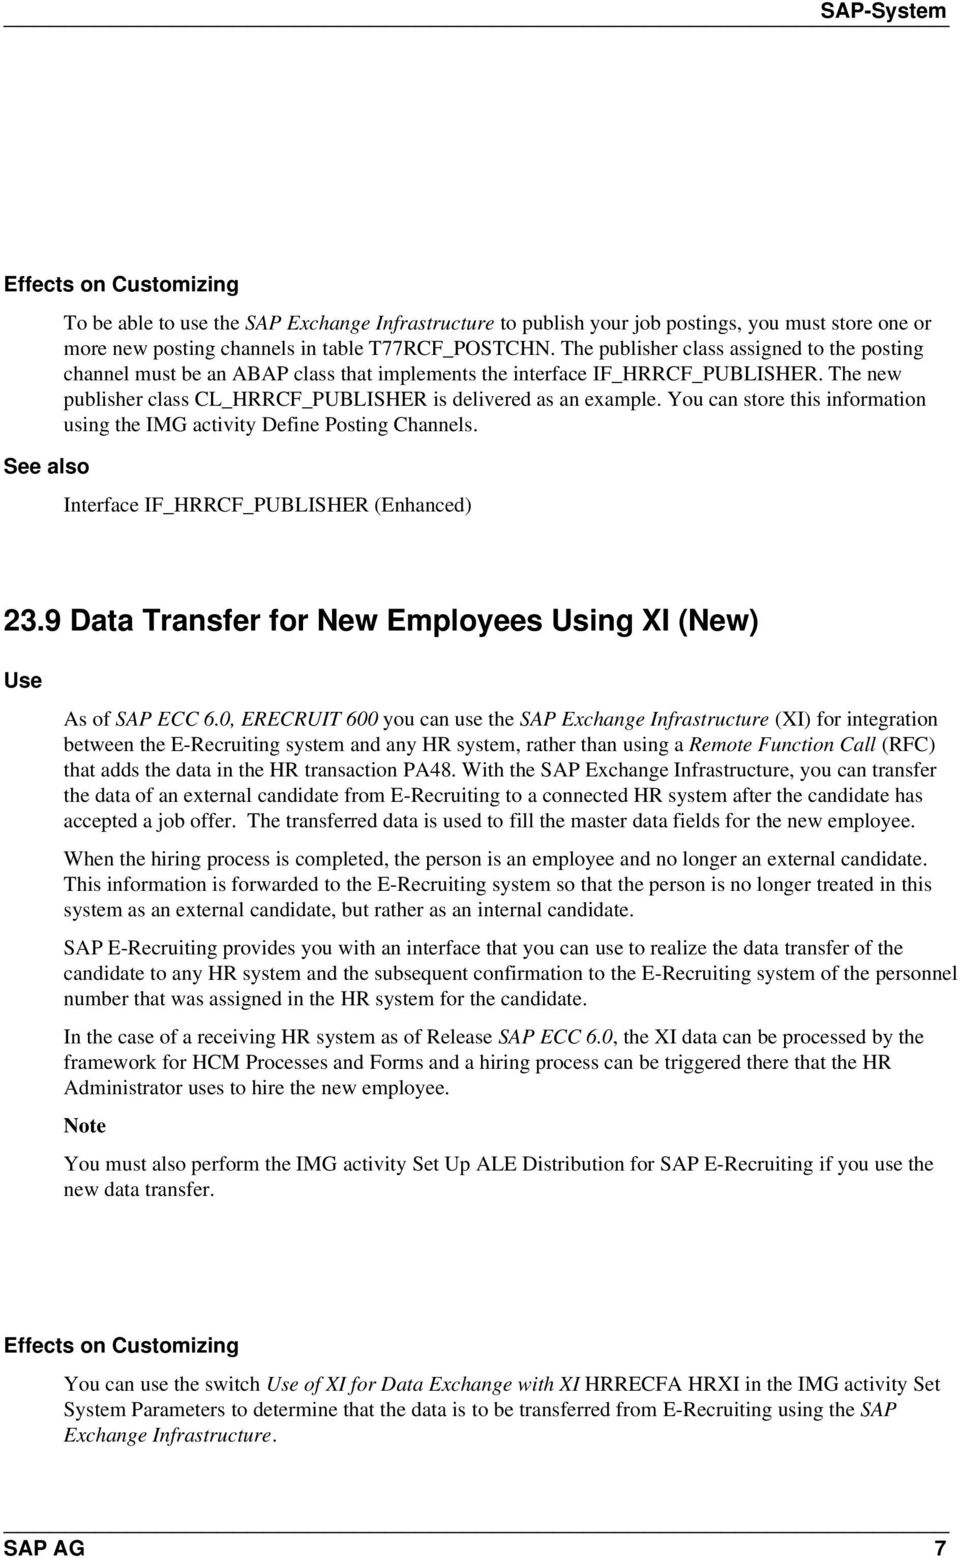 You can store this information using the IMG activity Define Posting Channels. Interface IF_HRRCF_PUBLISHER (Enhanced) 23.9 Data Transfer for New Employees Using XI (New) As of SAP ECC 6.